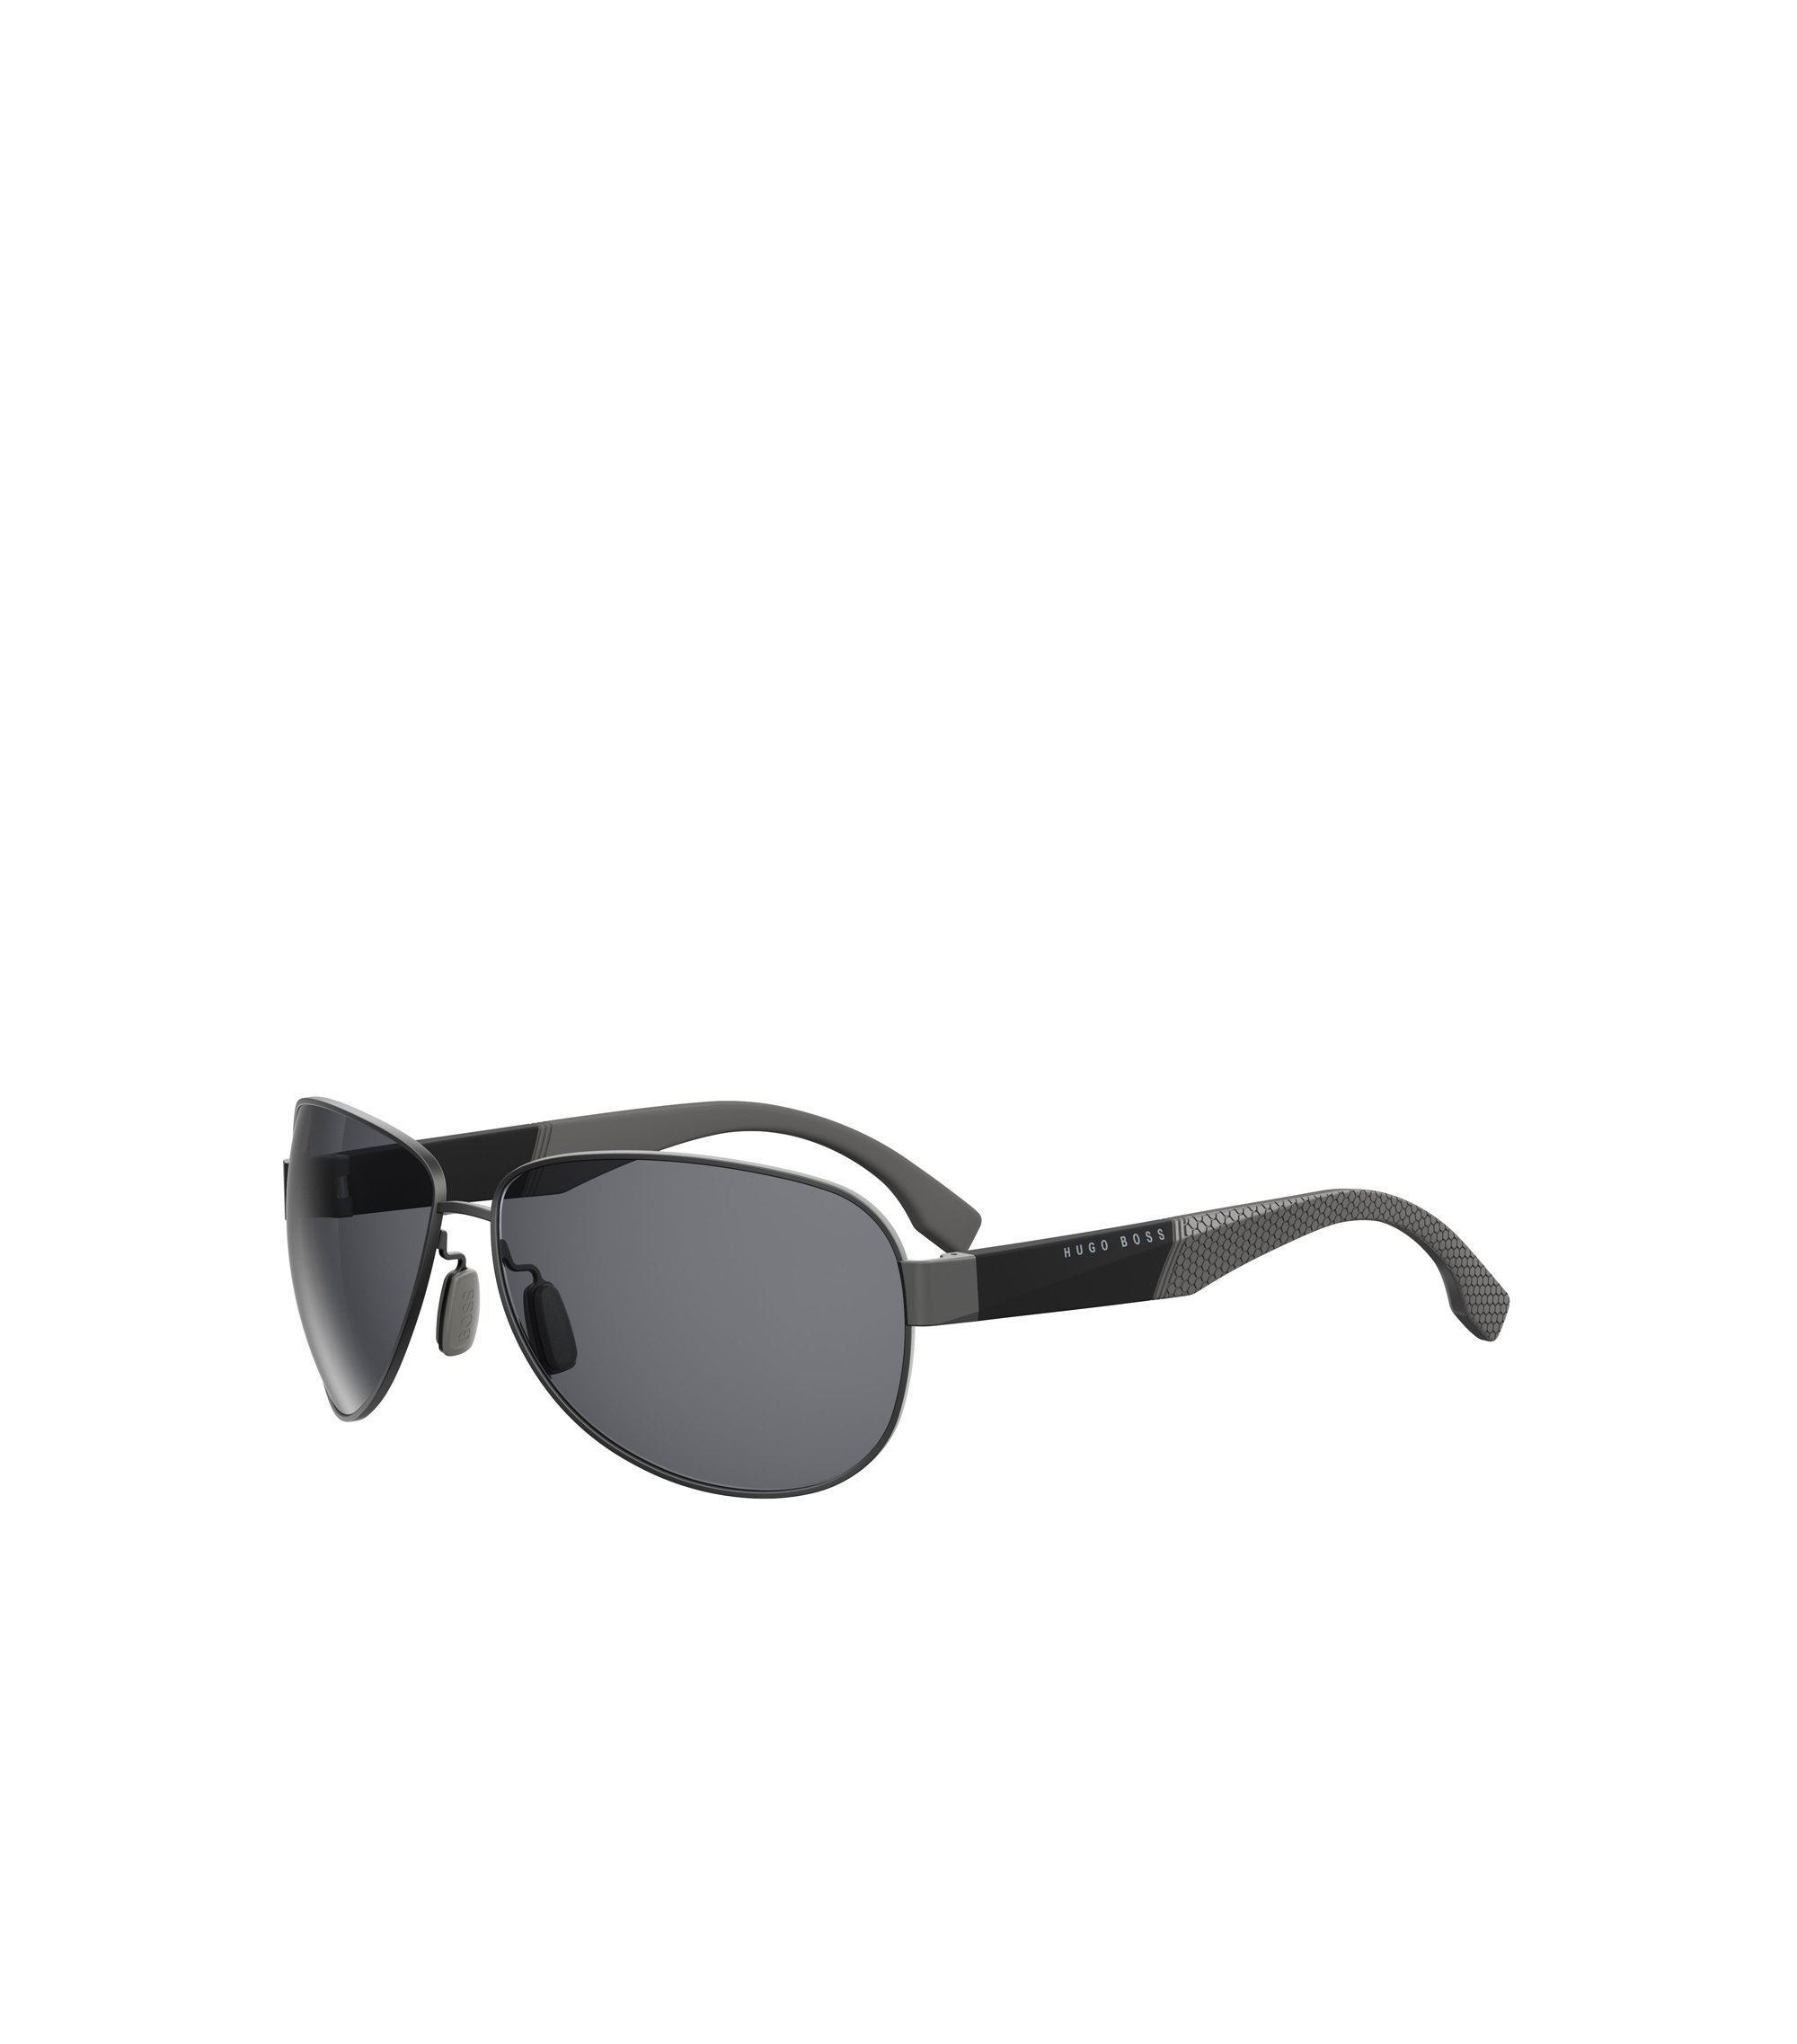 Black Aviator Sunglasses | BOSS 0915/S, Assorted-Pre-Pack